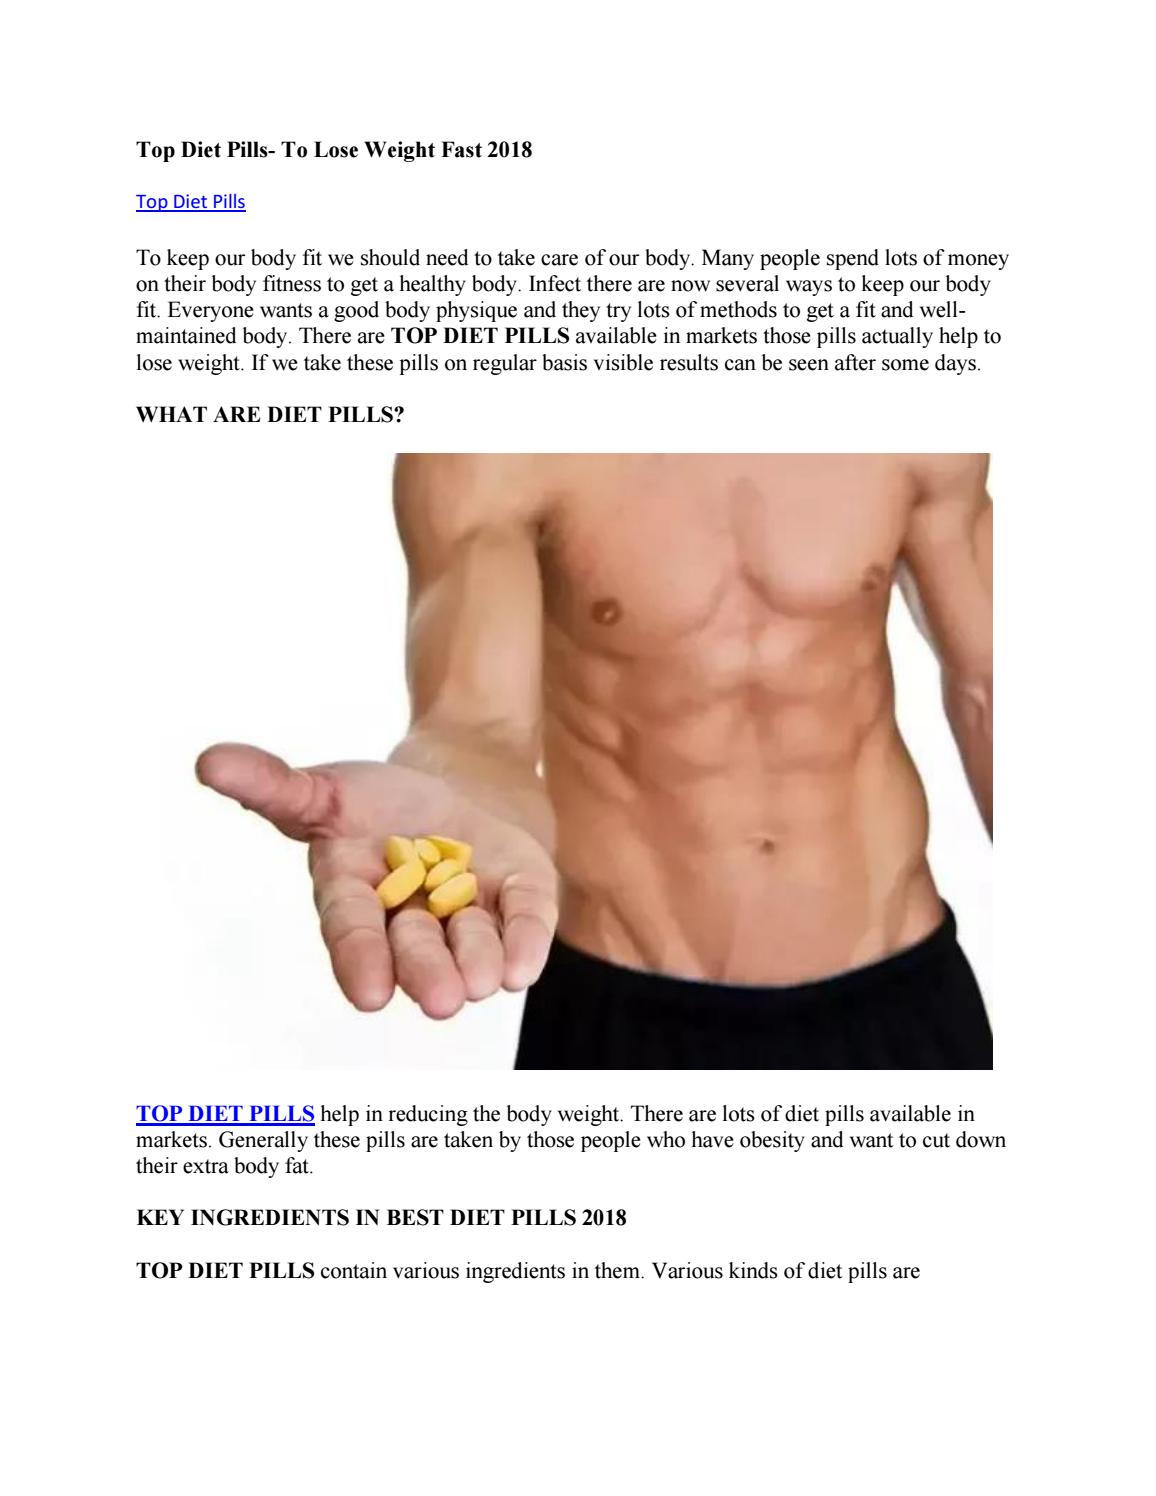 Top Diet Pills To Lose Weight Fast 2018 By Top Diet Pills